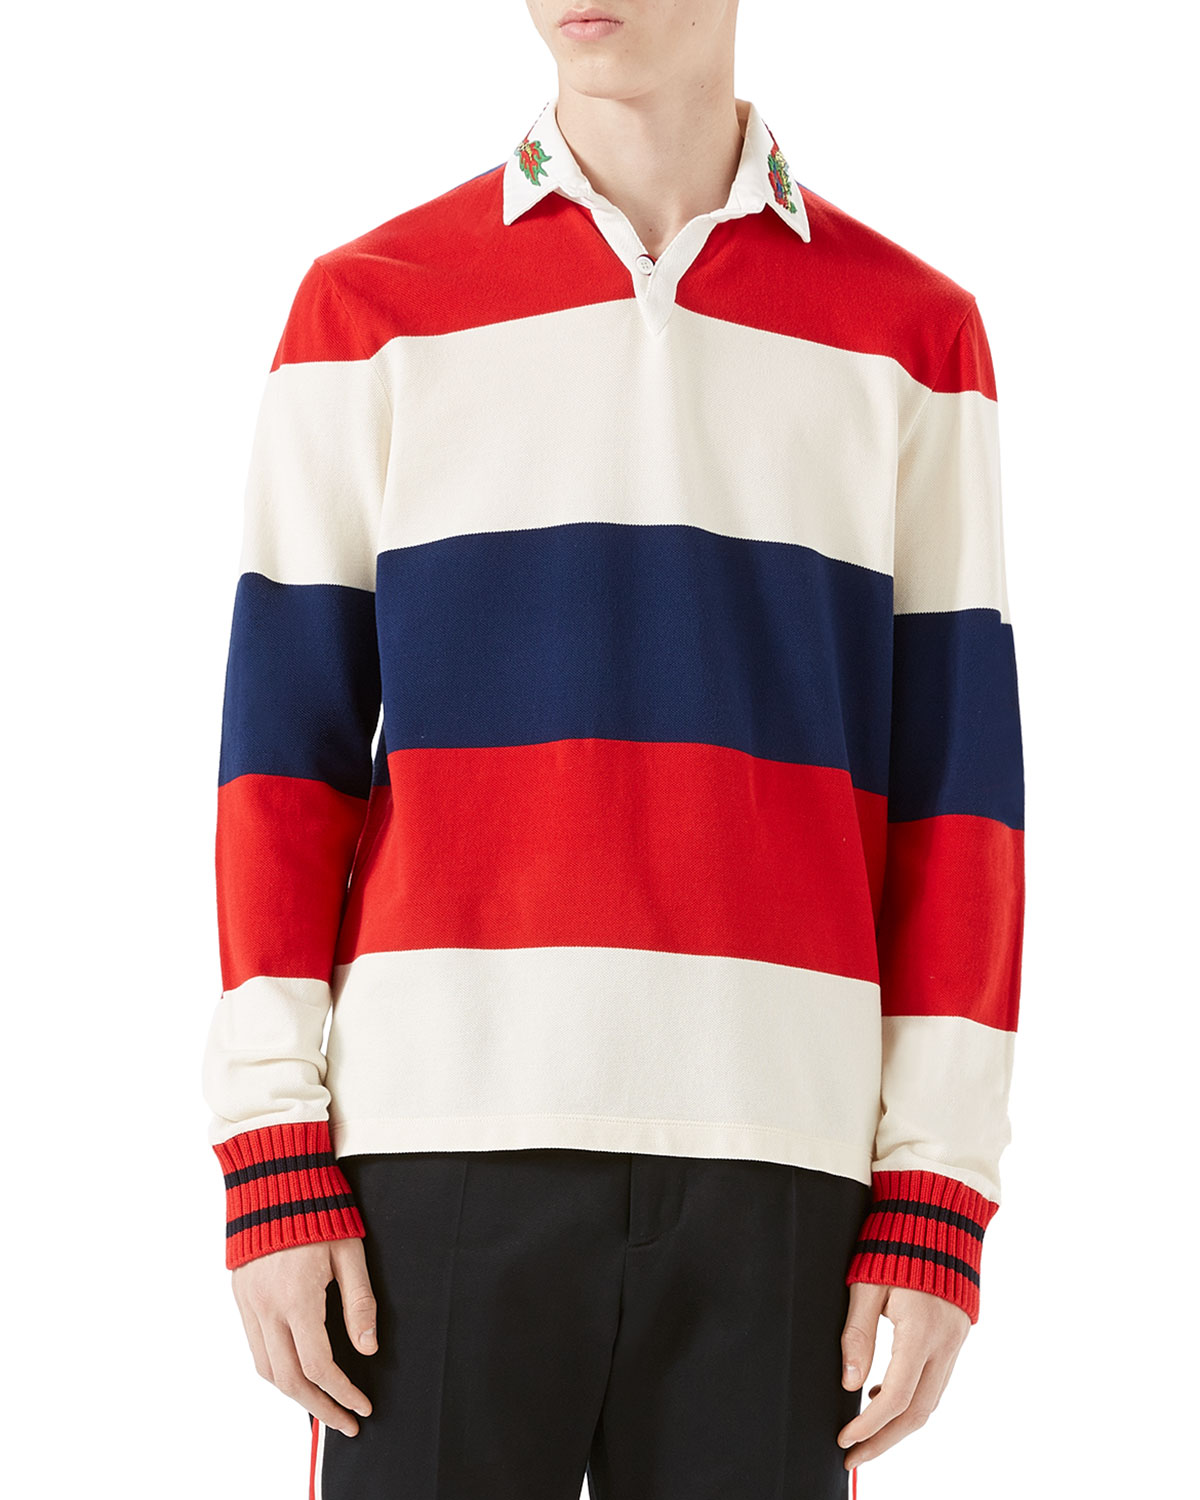 Gucci Striped Pique Rugby Shirt With Dragon Embroidery Neiman Marcus